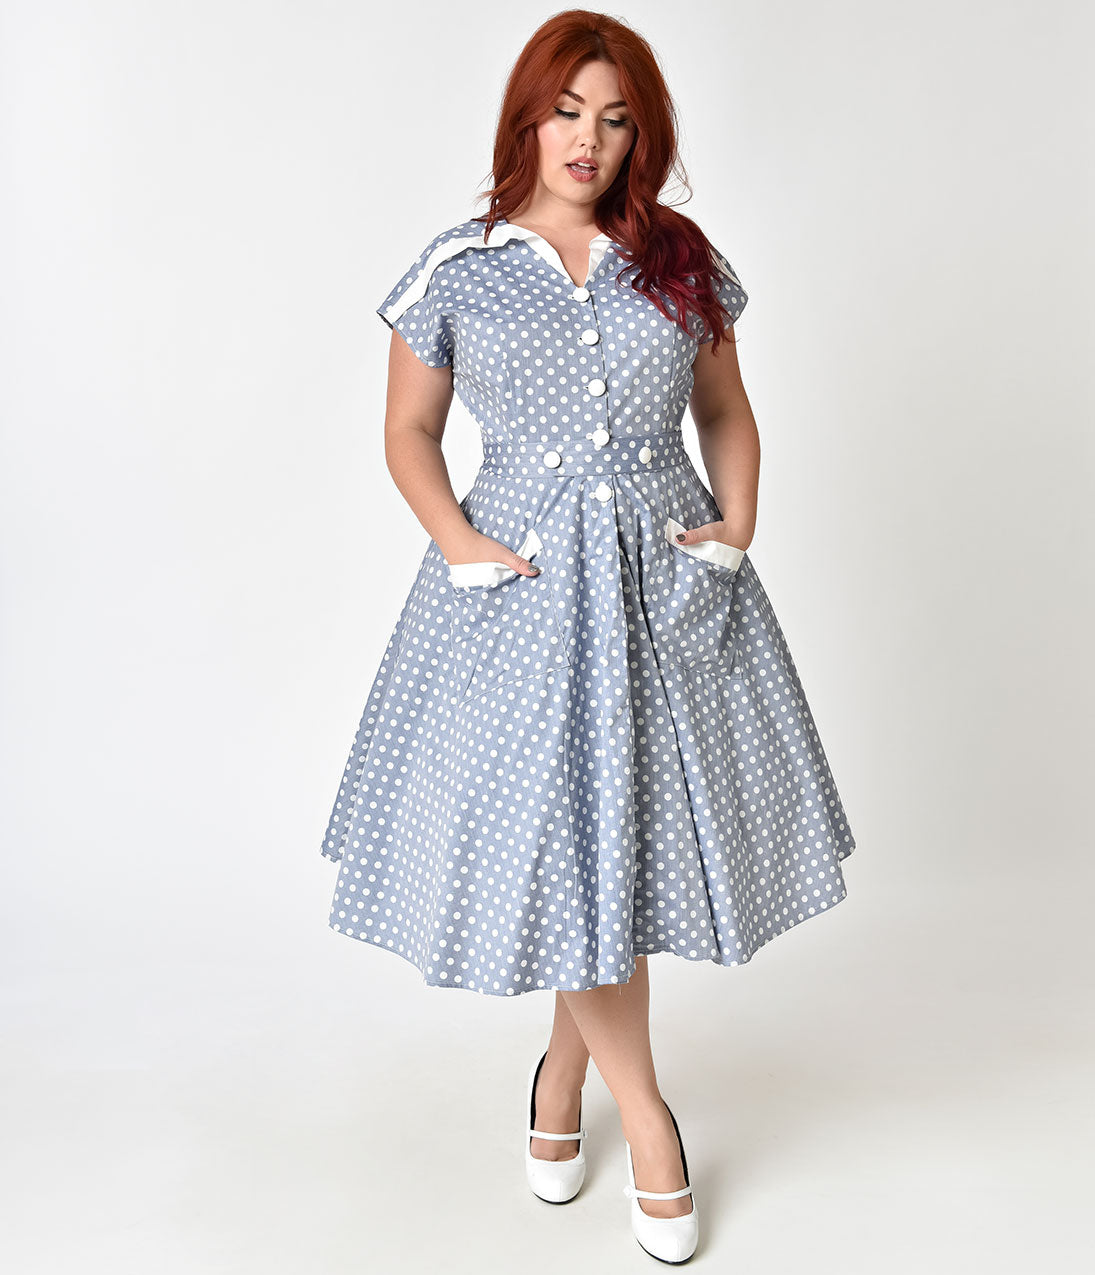 Polka Dot Dresses: 20s, 30s, 40s, 50s, 60s Unique Vintage Plus Size 1950S Light Blue  Ivory Dotted Cap Sleeve Hedda Swing Dress $71.00 AT vintagedancer.com